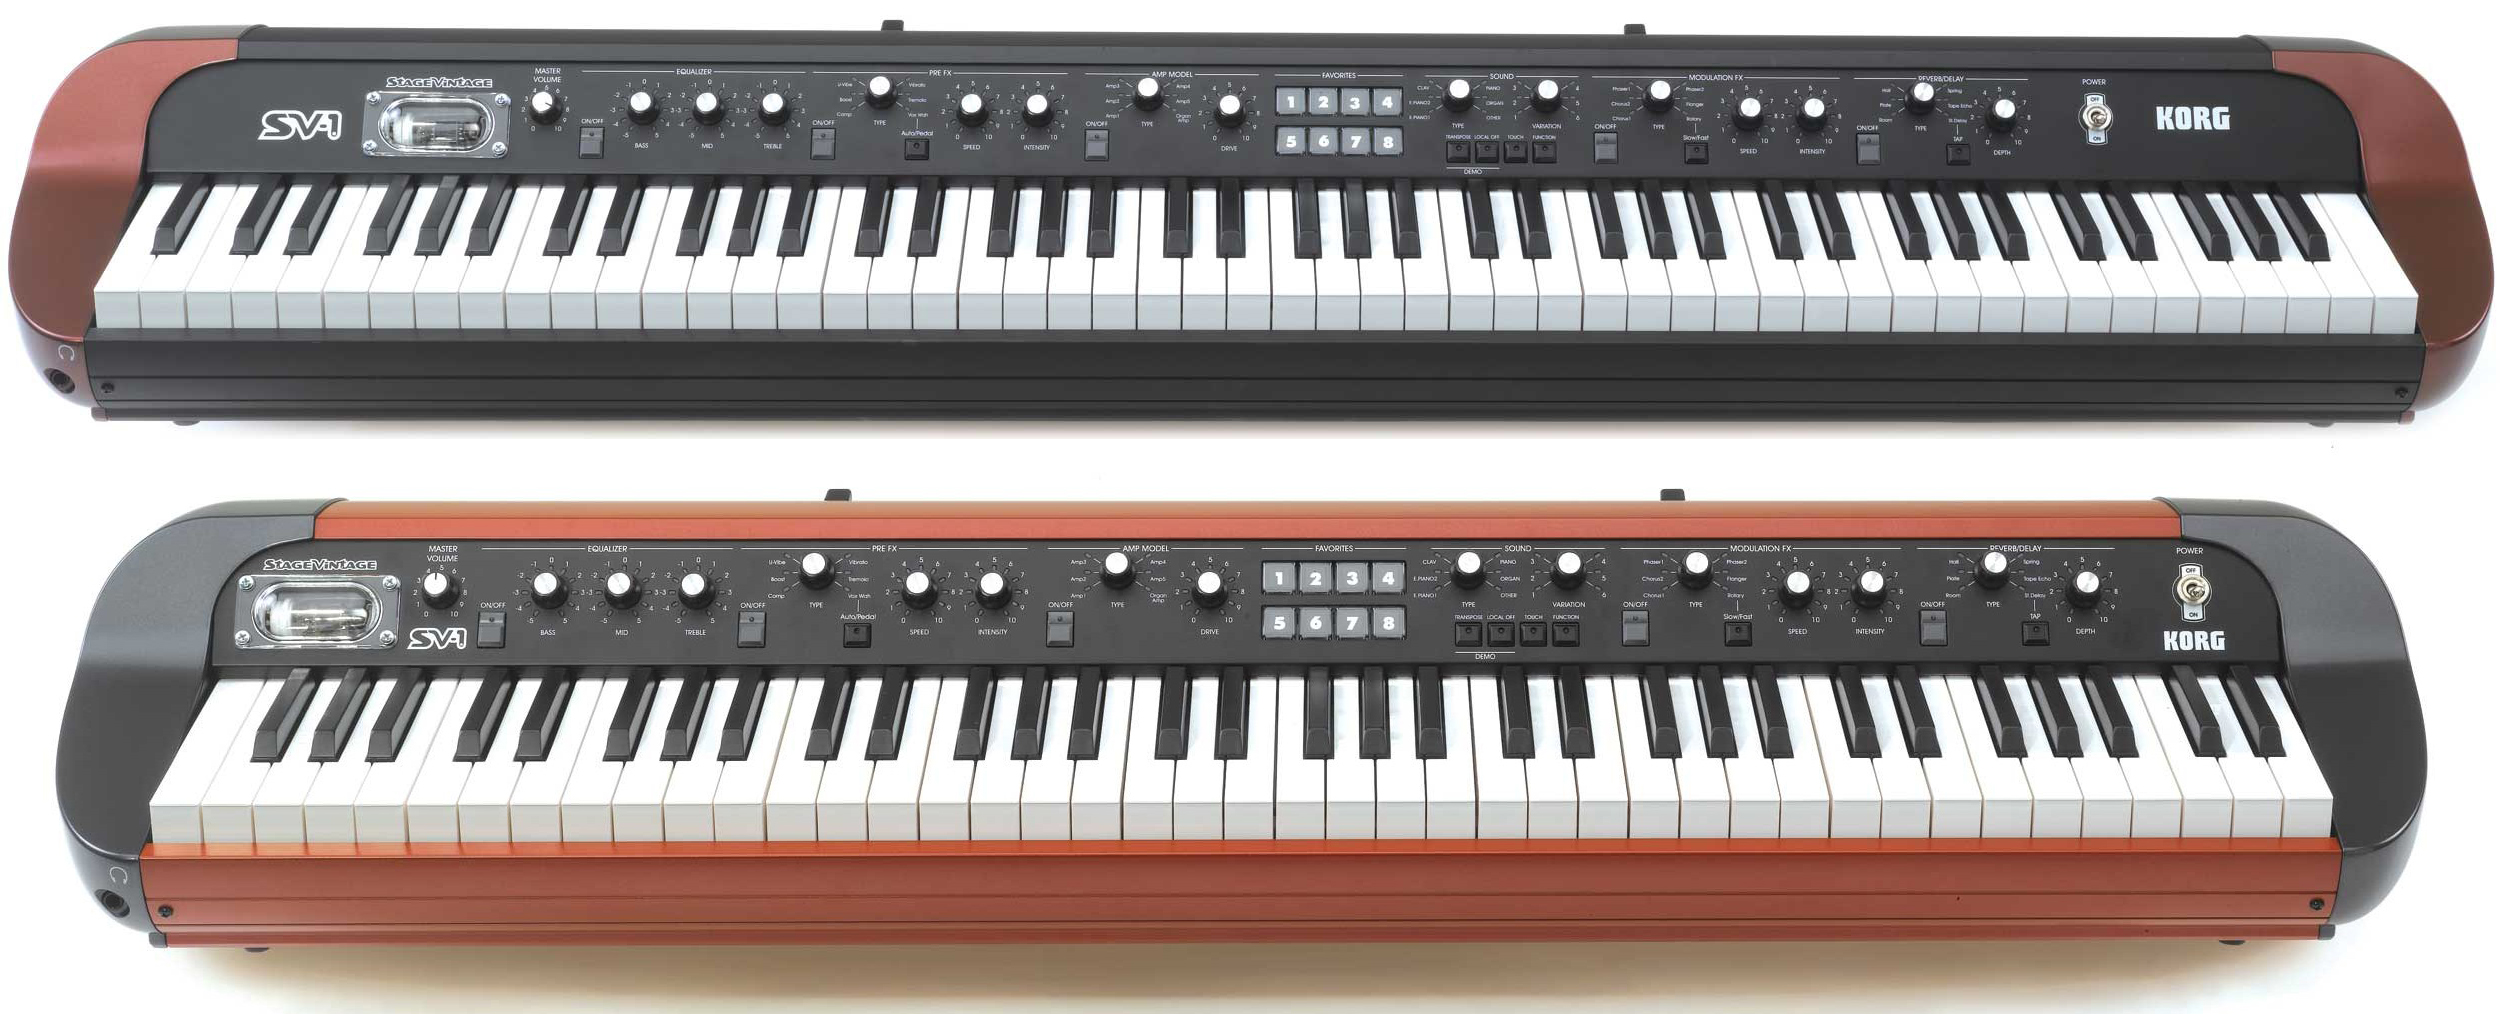 el piano vintage korg sv 1 protagonista absoluto en la fiesta wtf bcn jam sessions del 22 de. Black Bedroom Furniture Sets. Home Design Ideas